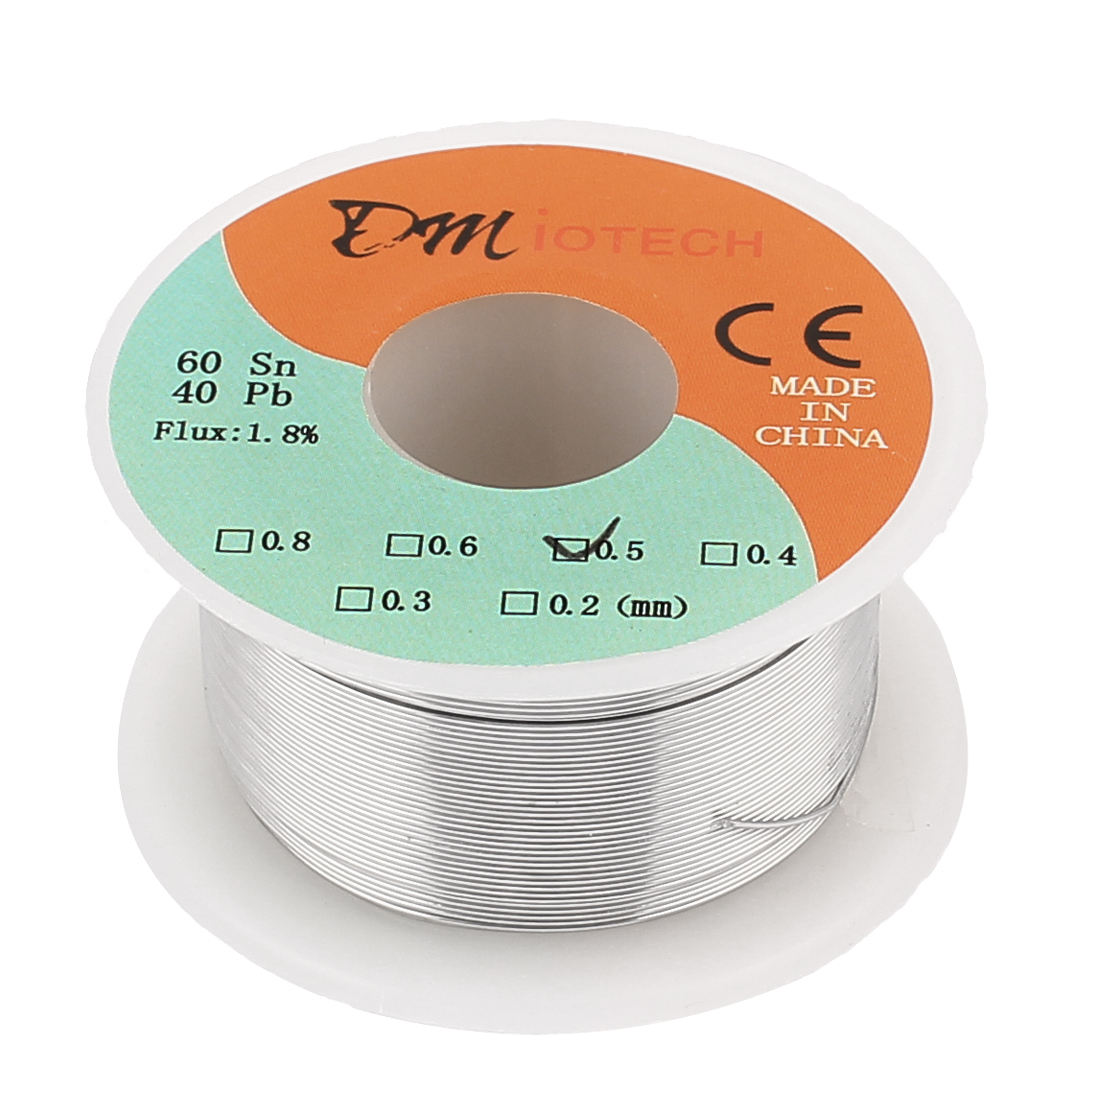 0.5mm 50G 60/40 Rosin Core Tin Lead Roll Soldering Solder Wire